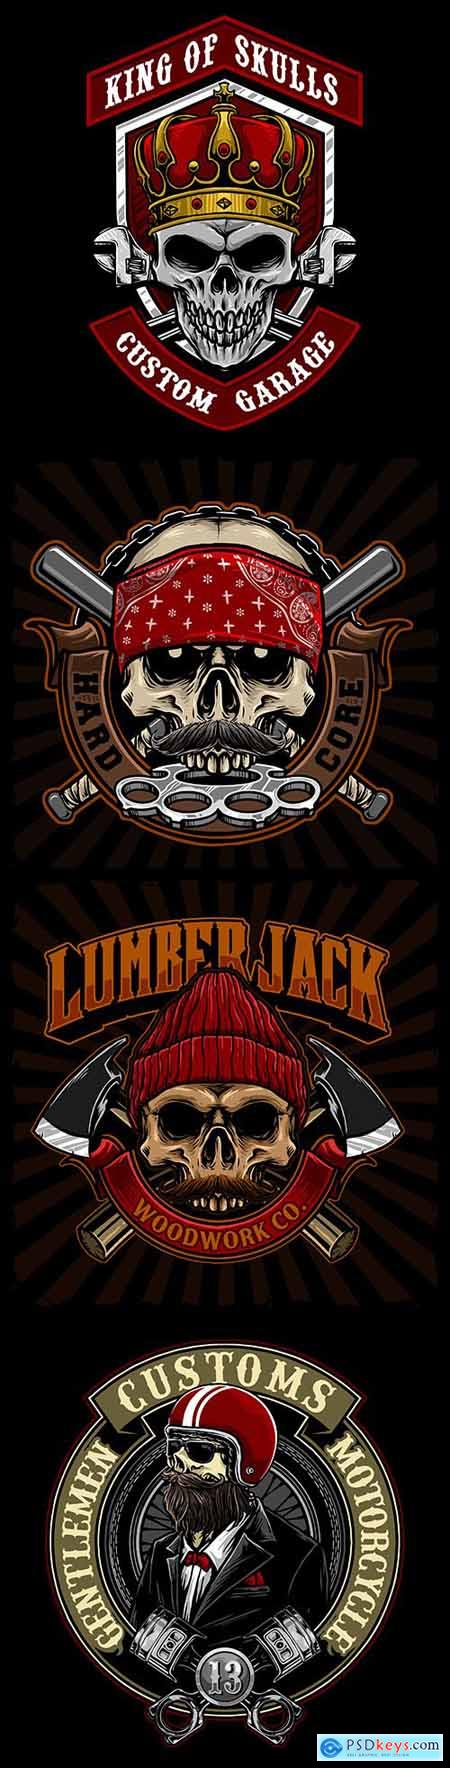 Skull and retro biker style weapons design emblems